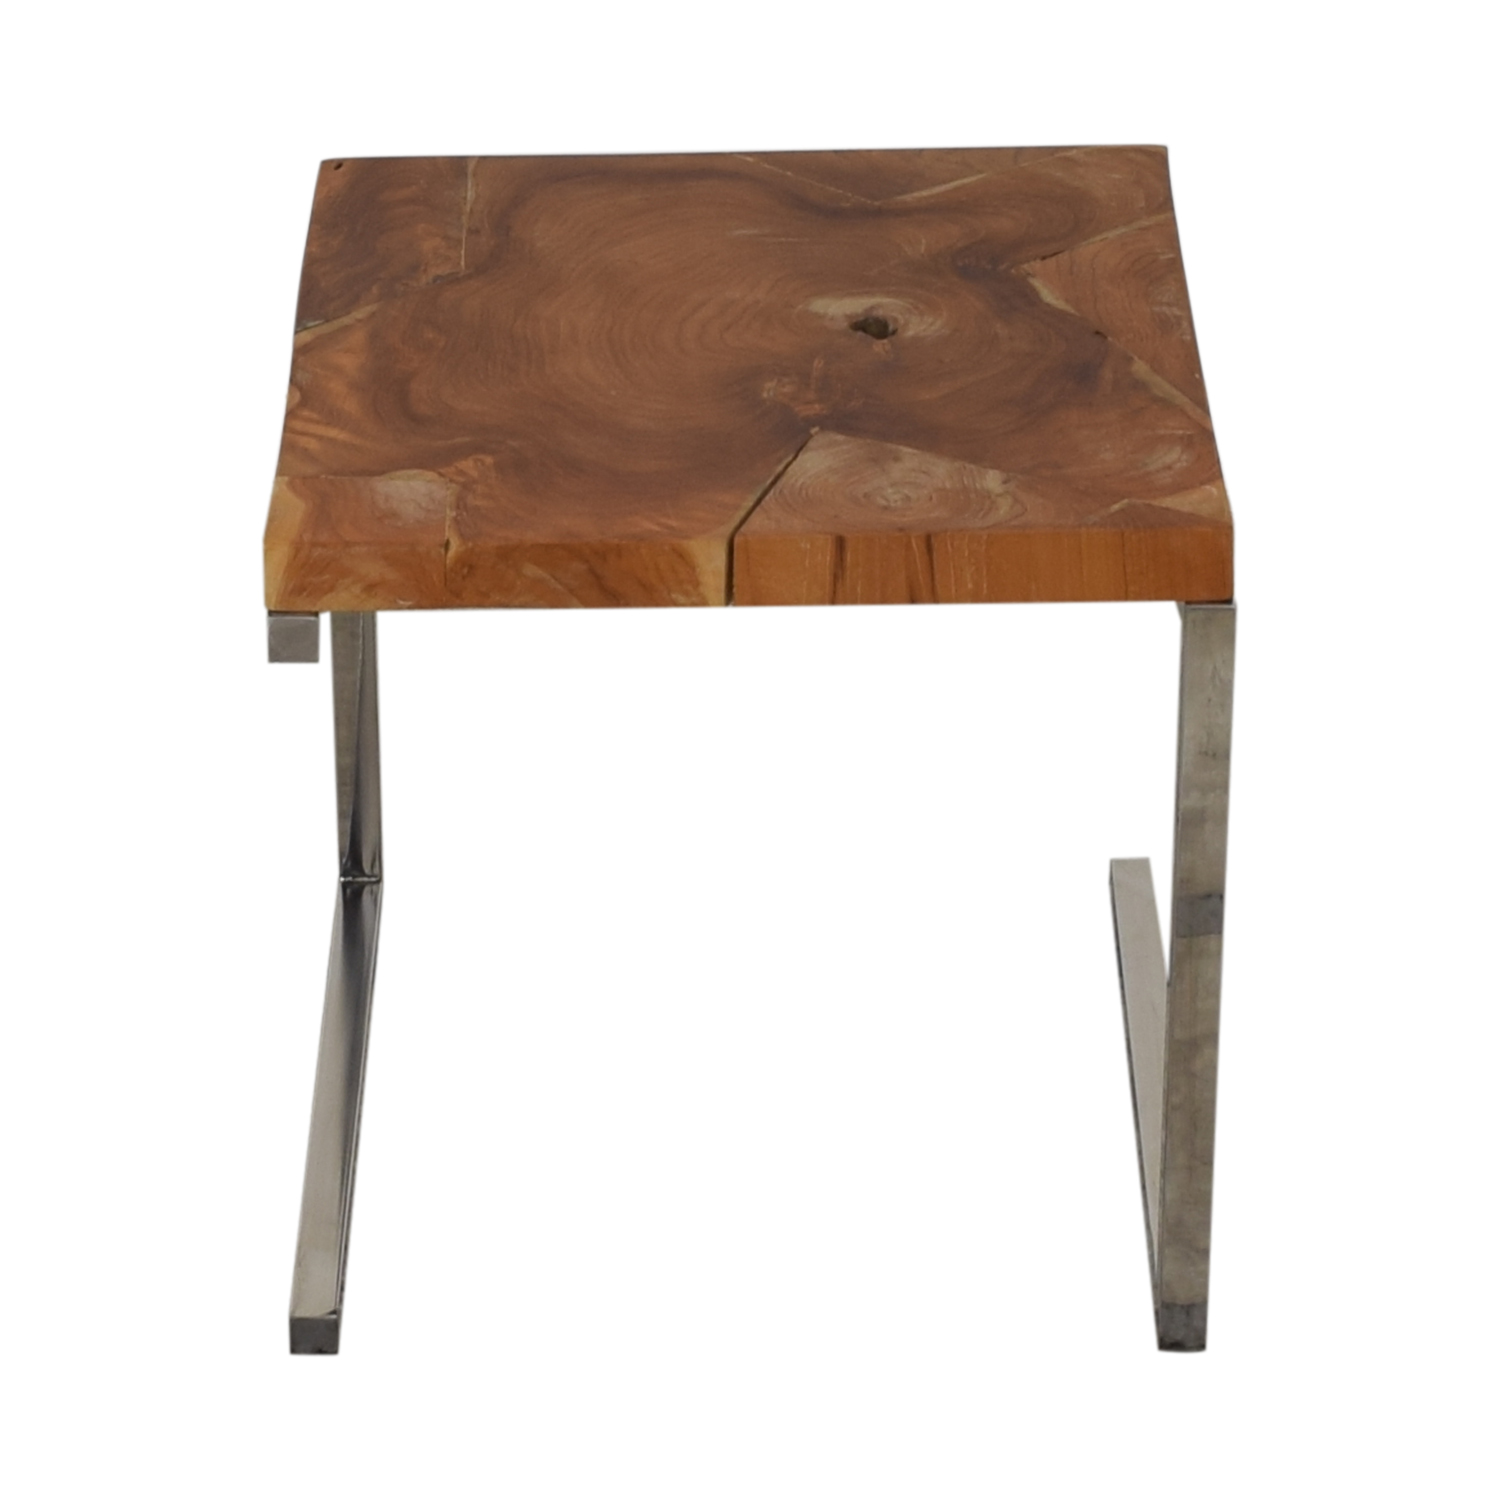 Neiman Marcus Modern Side Table / Tables